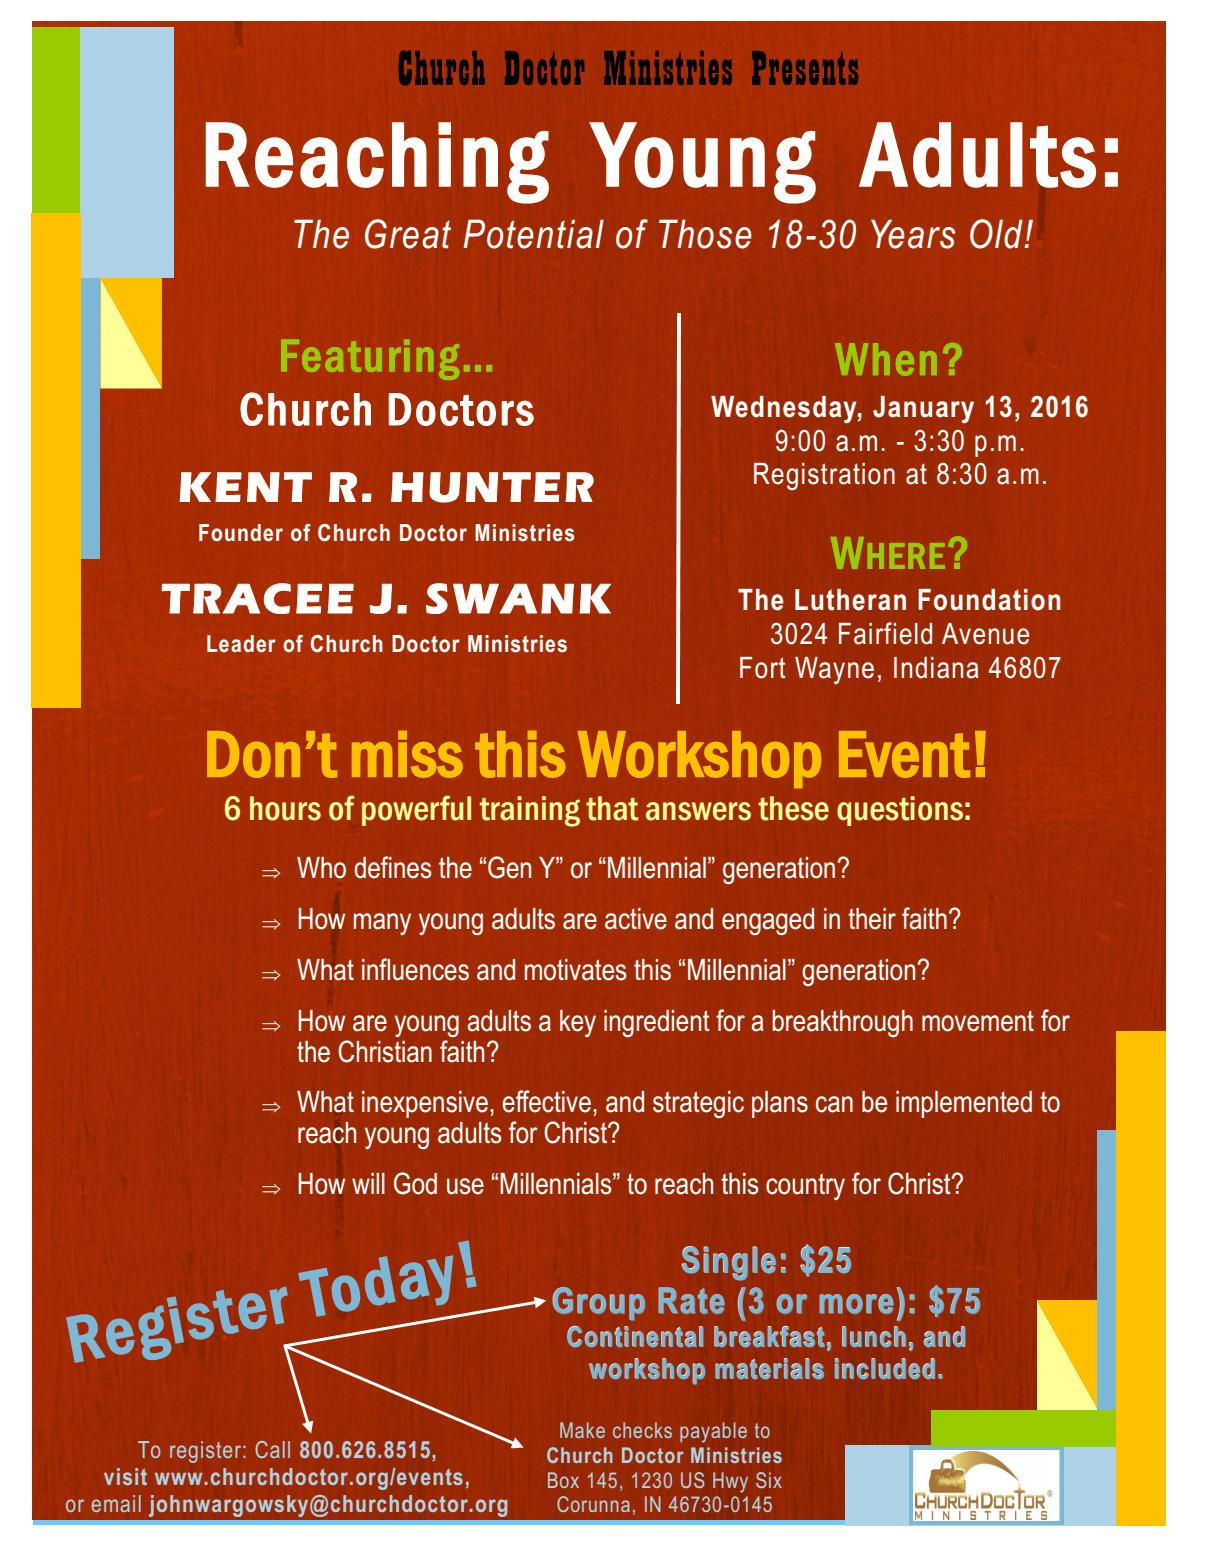 Reaching Young Adults Workshop — January 13, 2016 — Fort Wayne, IN